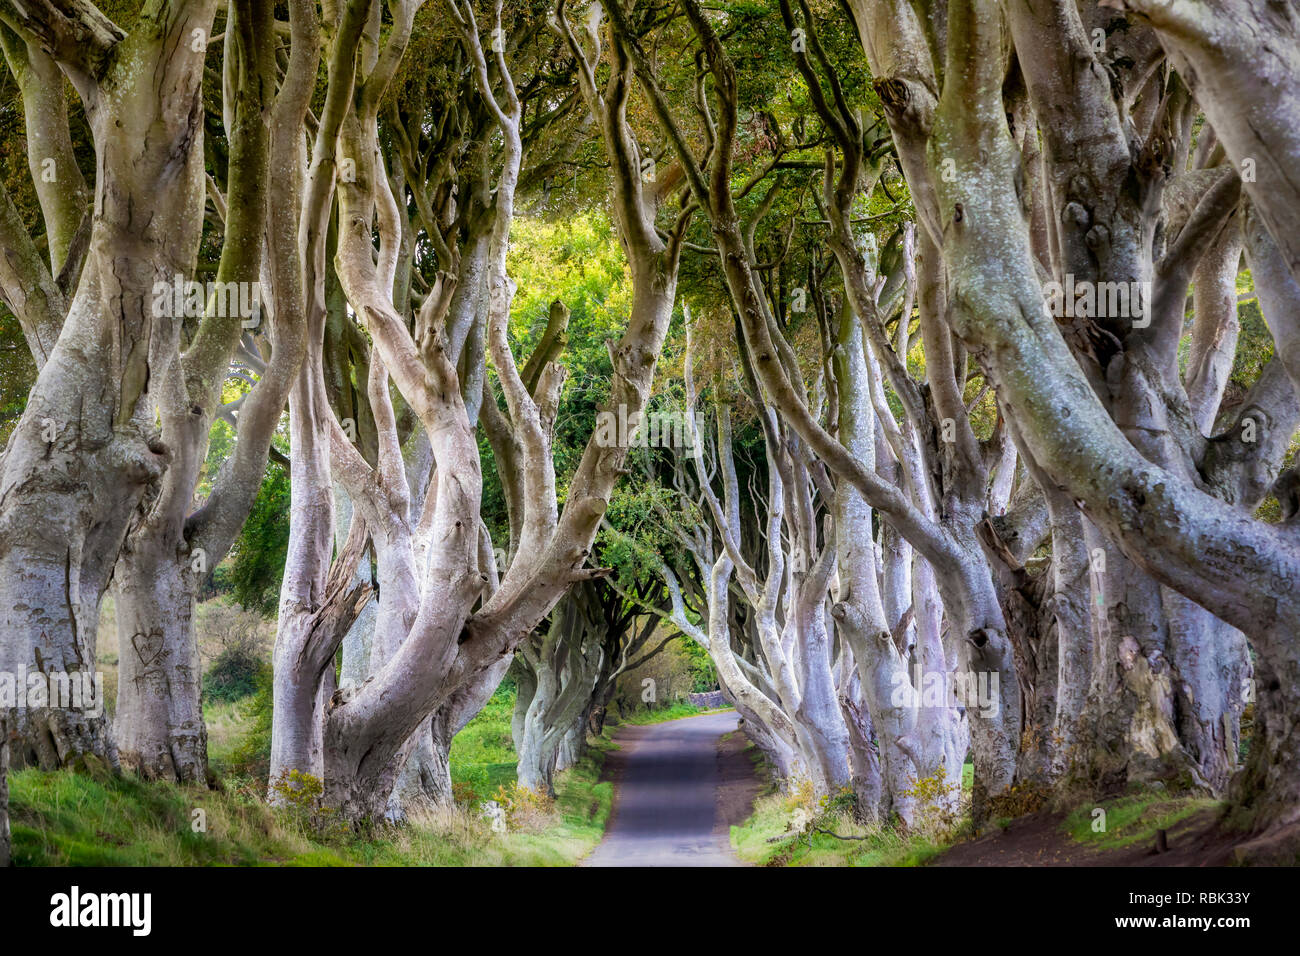 The Dark Hedges in Northern Ireland where scenes from Game of Thrones was filmed. - Stock Image